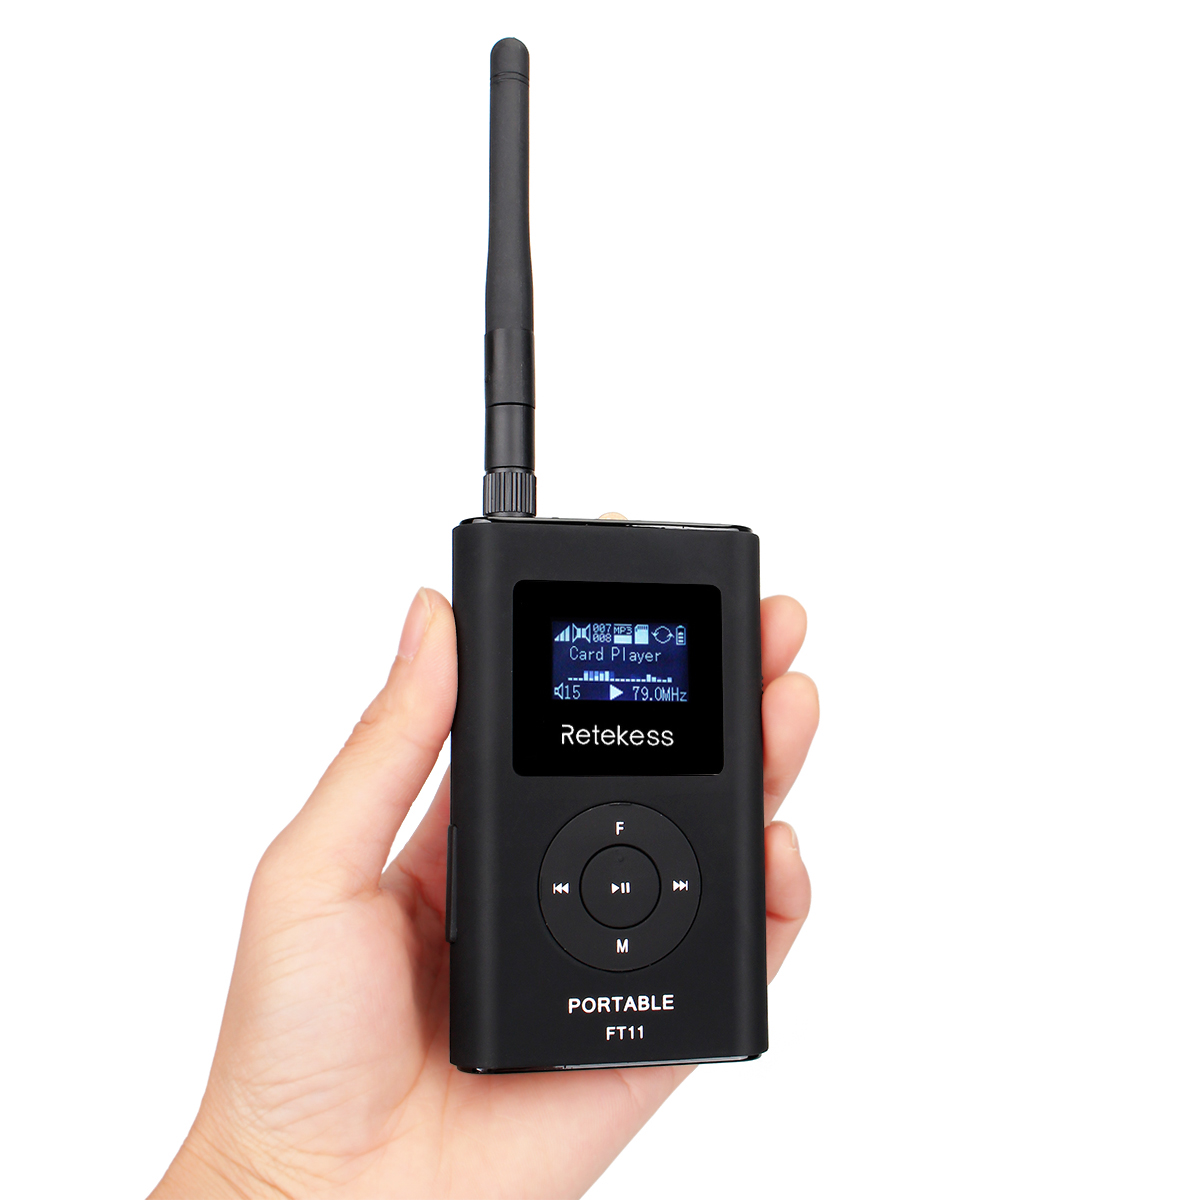 RETEKESS FT11 Portable FM Transmitter Handheld MP3 Broadcast Radio Transmitter for <font><b>Car</b></font> Meeting Tour <font><b>Guide</b></font> Teaching Camping image